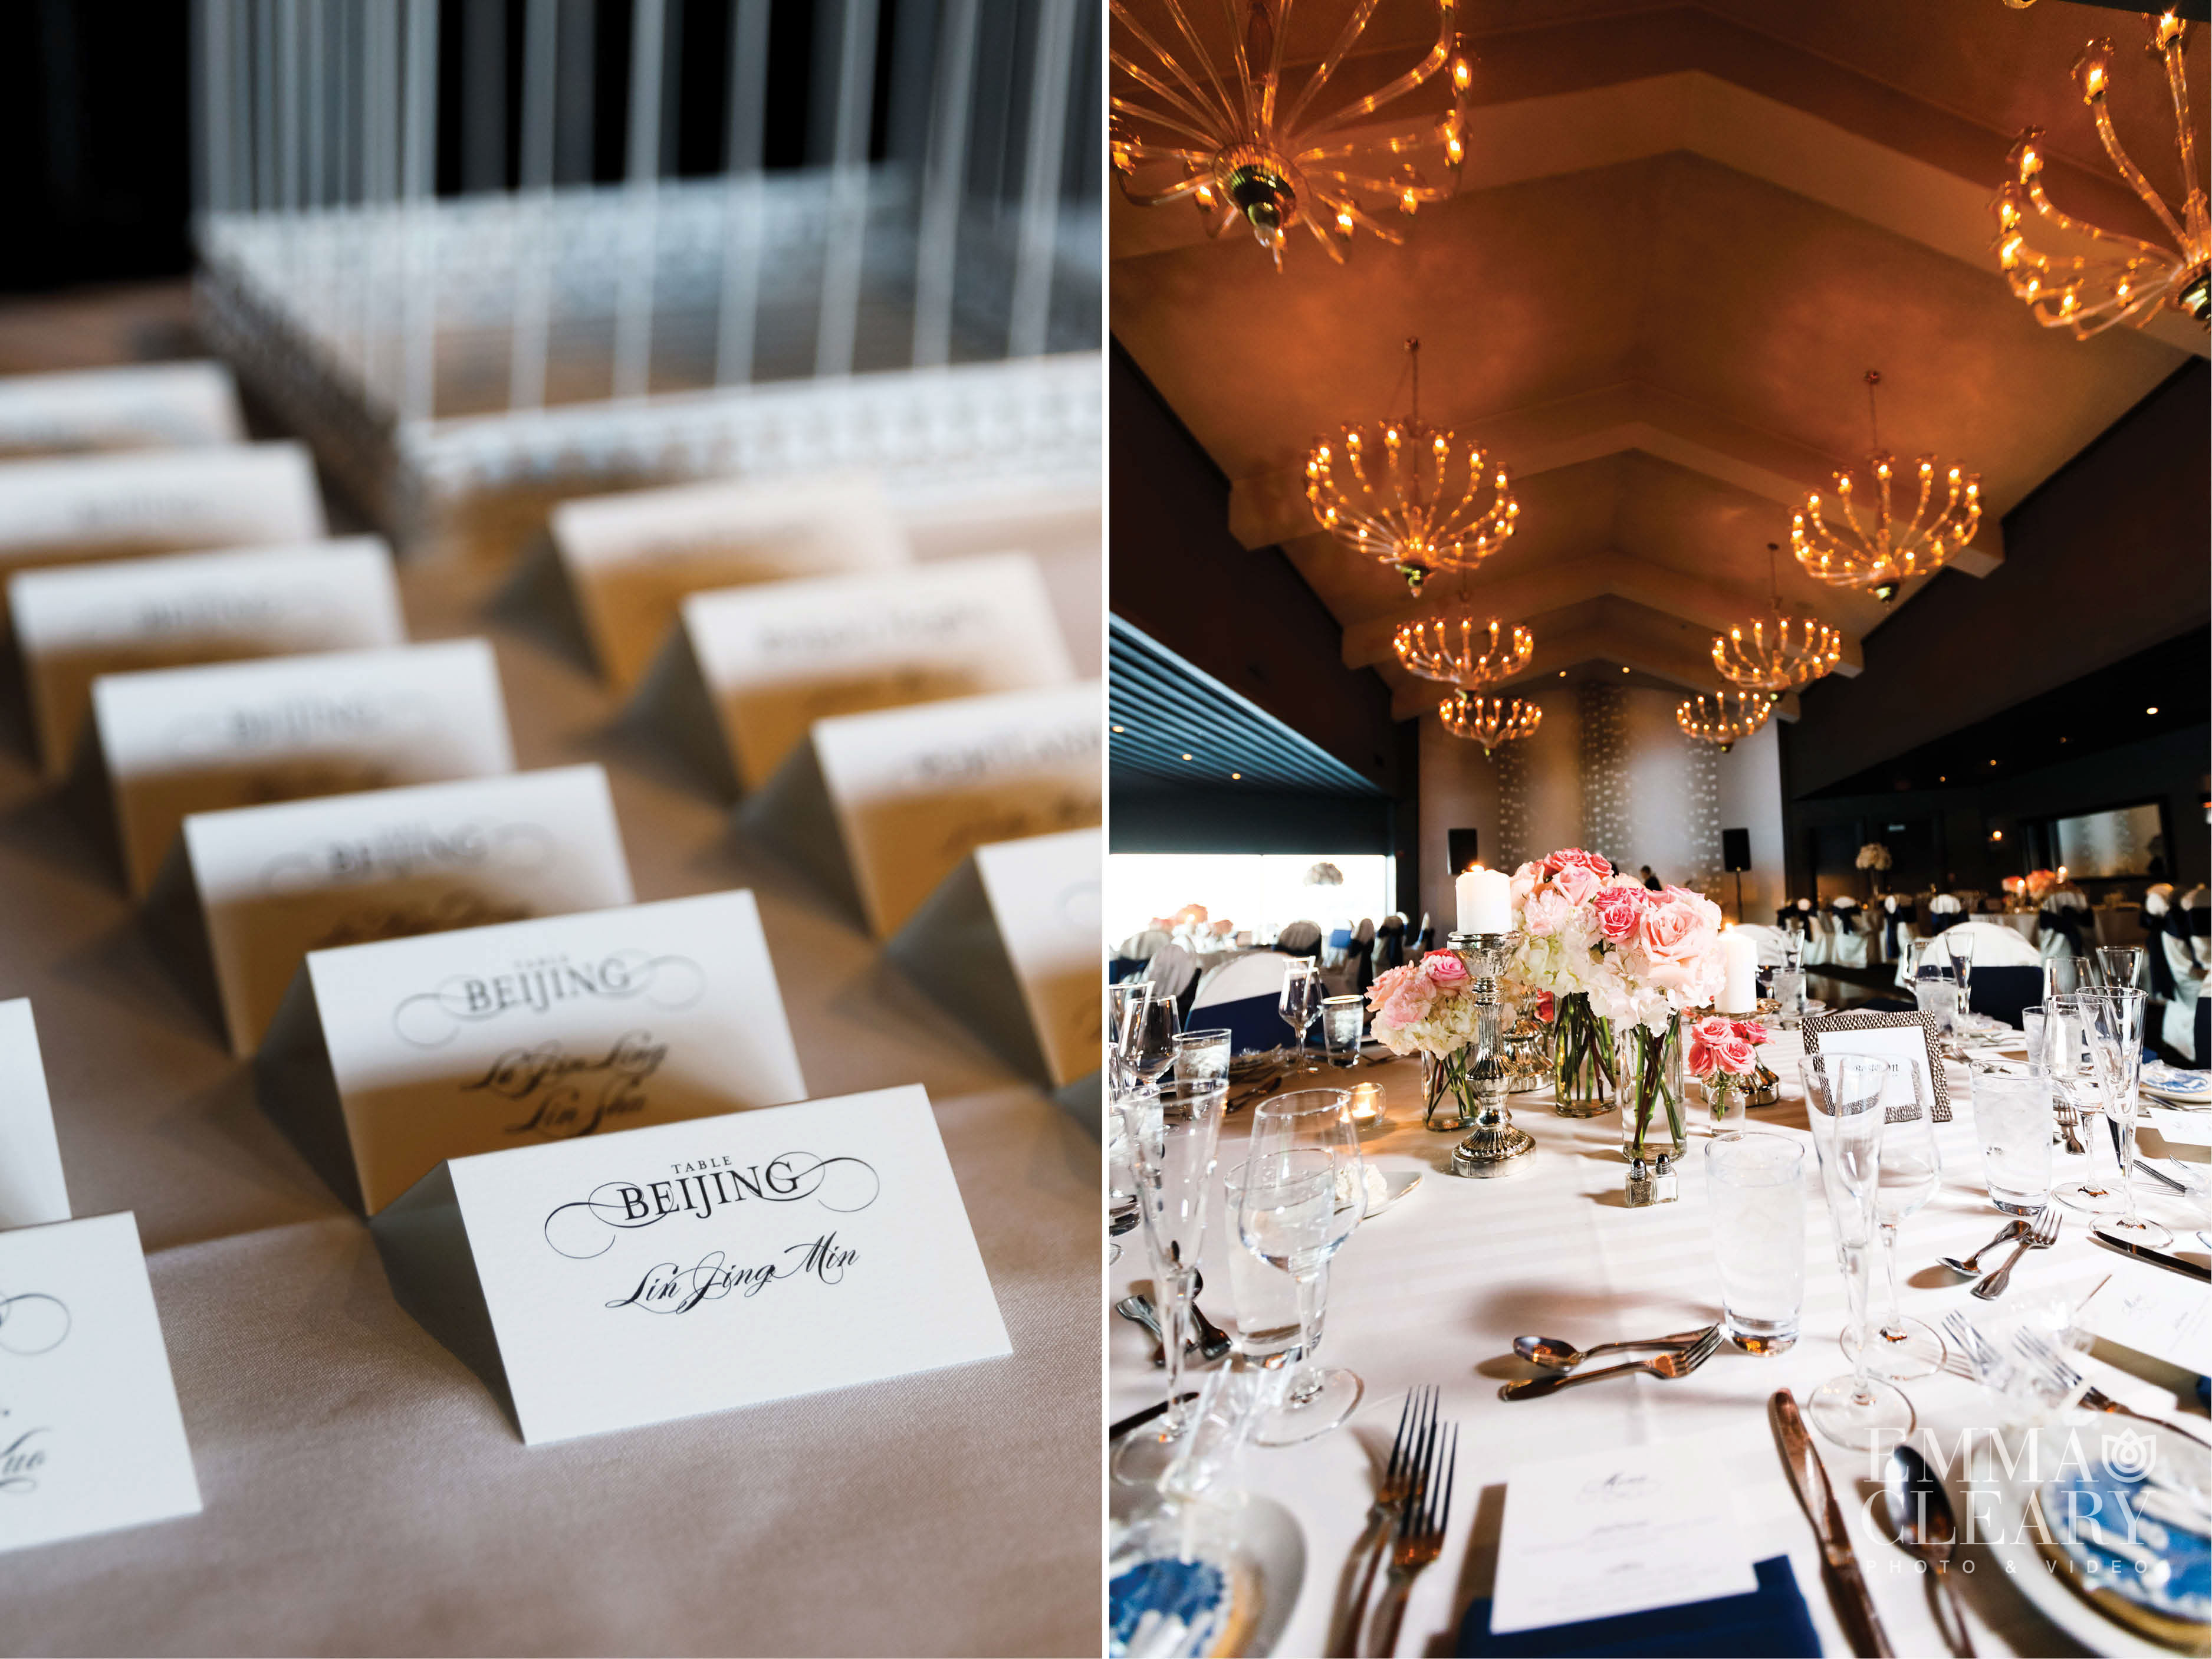 Remarkable New Jersey Wedding Photos Stunning Venue The Chart House Download Free Architecture Designs Scobabritishbridgeorg